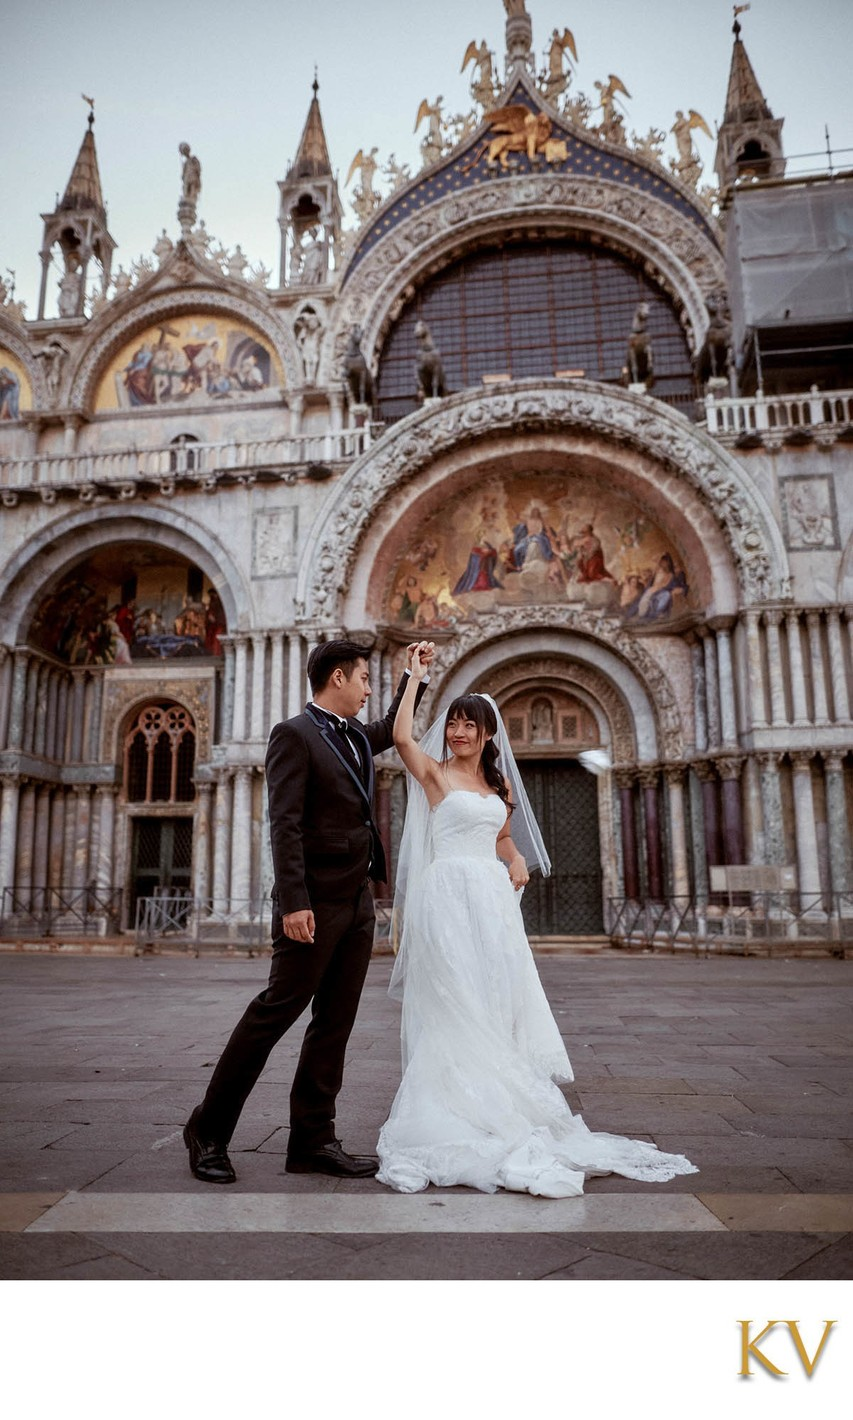 Twirling his bride in front of St Mark's Basilica Venice